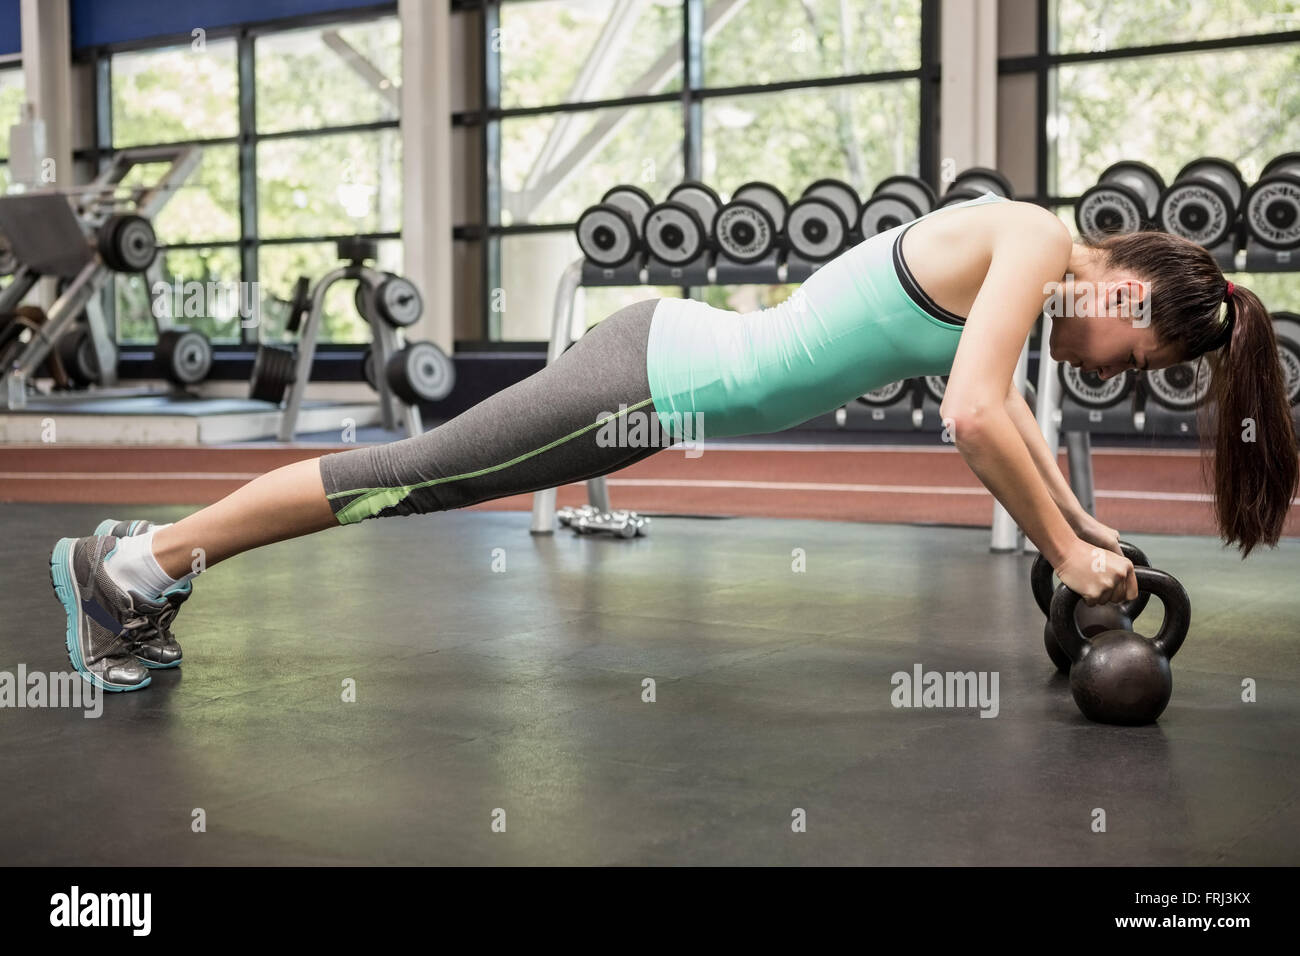 Woman working out with kettlebell - Stock Image